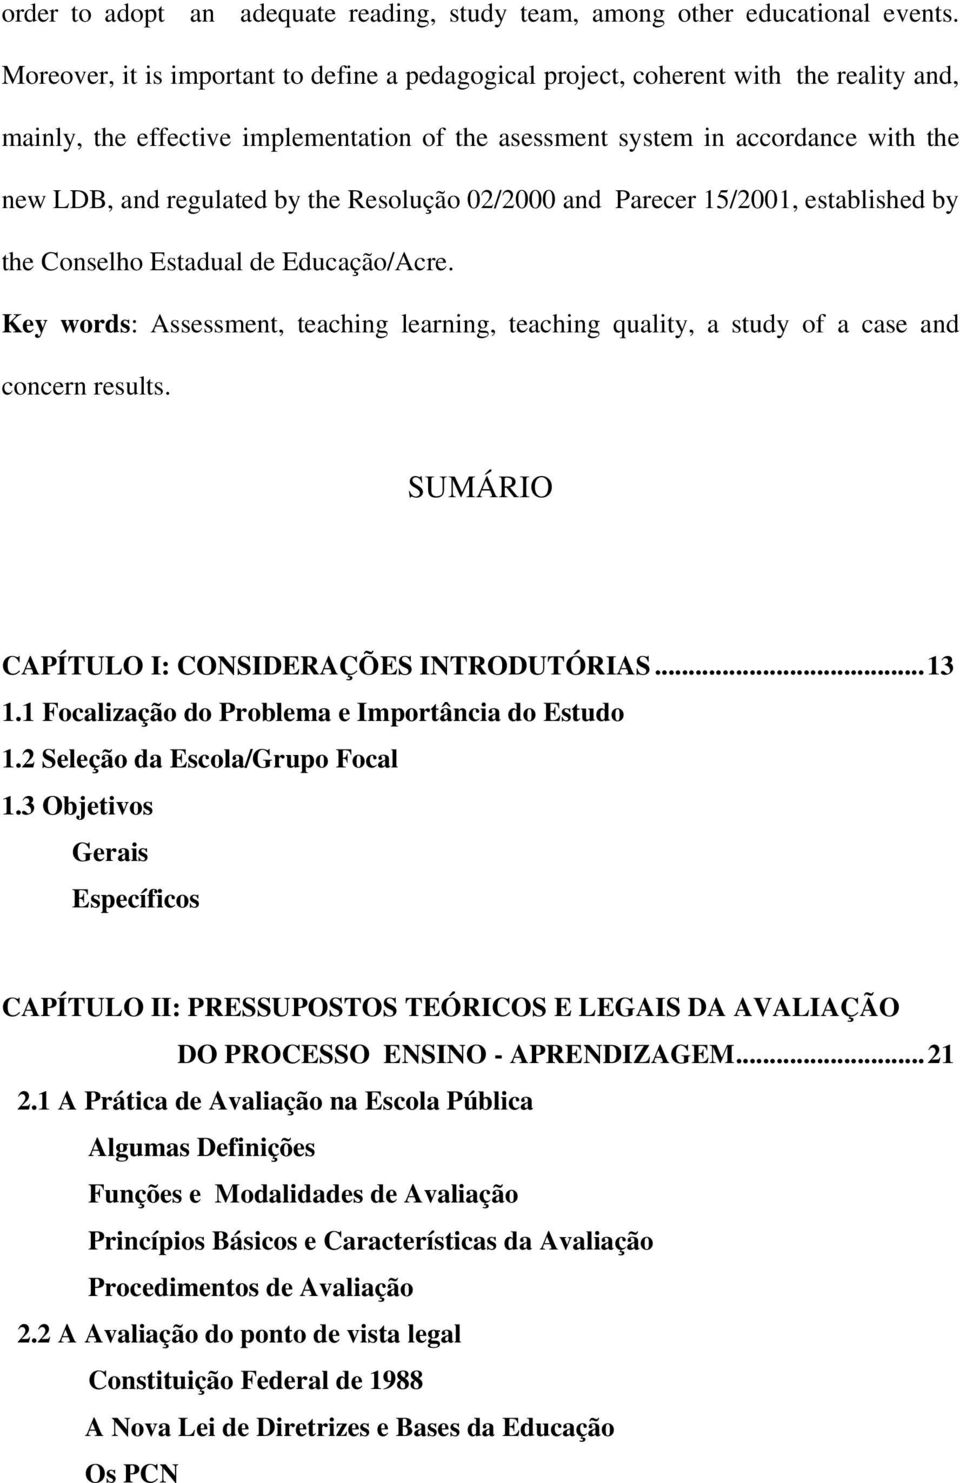 the Resolução 02/2000 and Parecer 15/2001, established by the Conselho Estadual de Educação/Acre. Key words: Assessment, teaching learning, teaching quality, a study of a case and concern results.